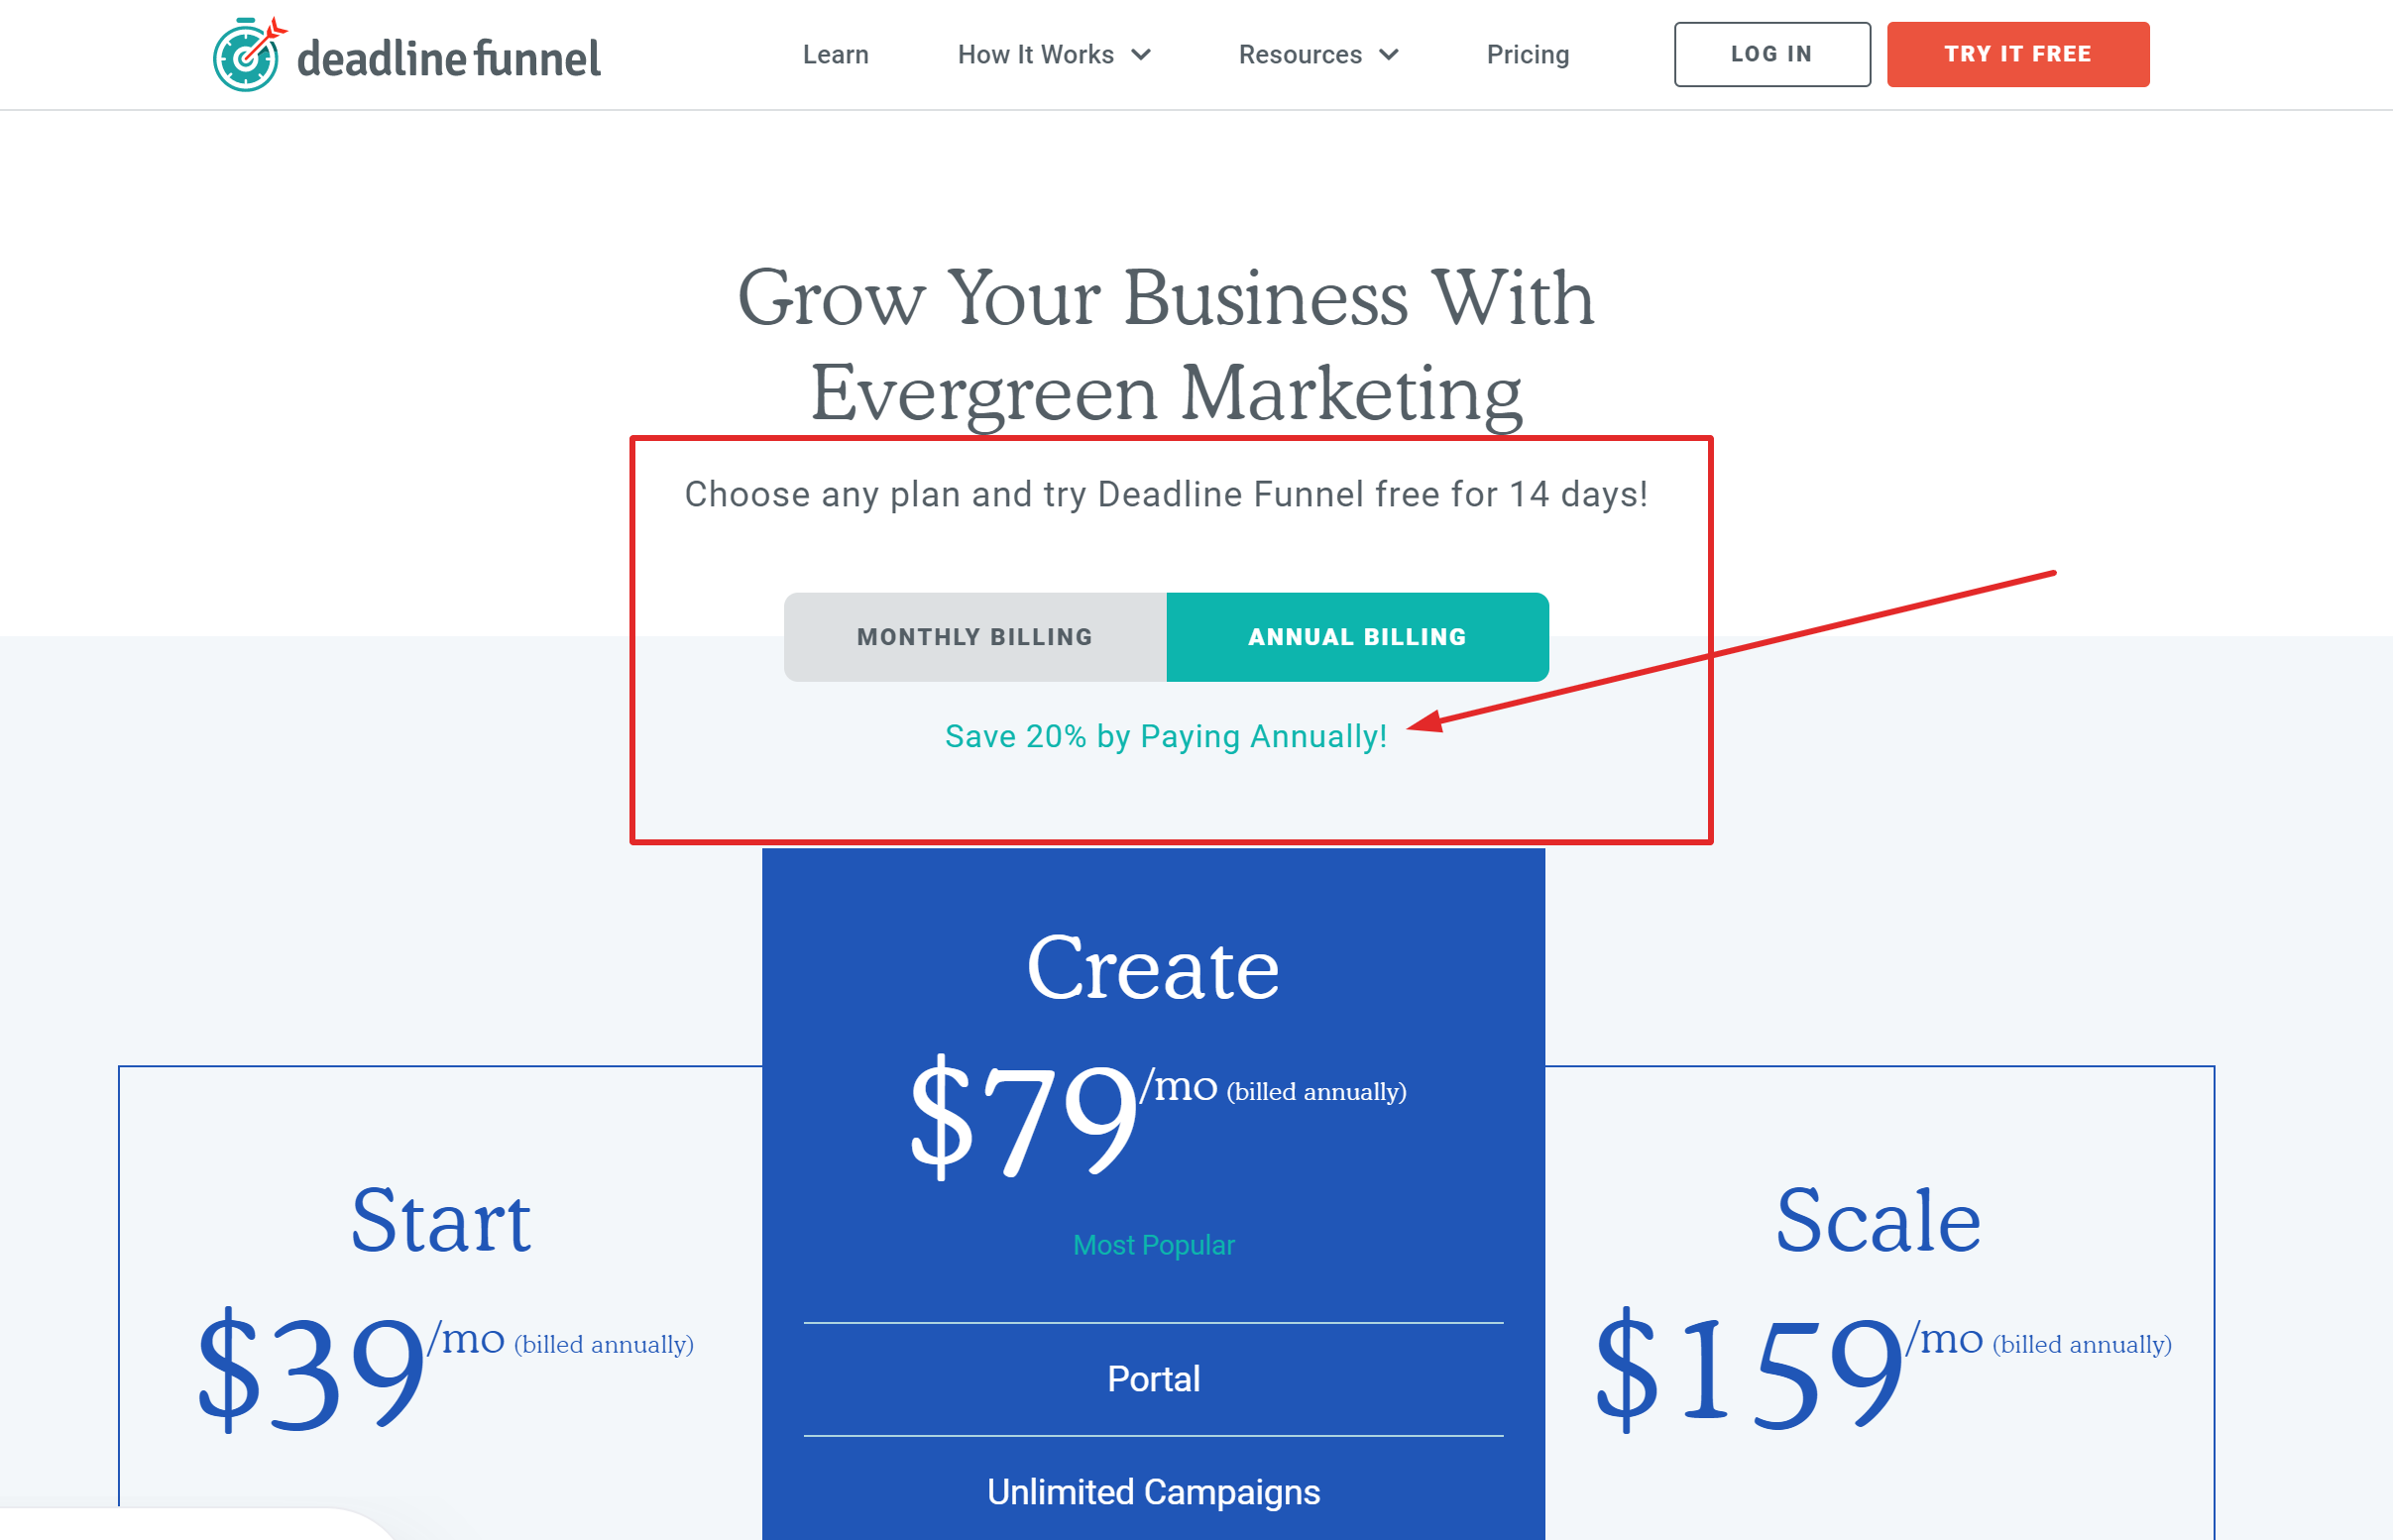 Deadline funnel pricing coupon